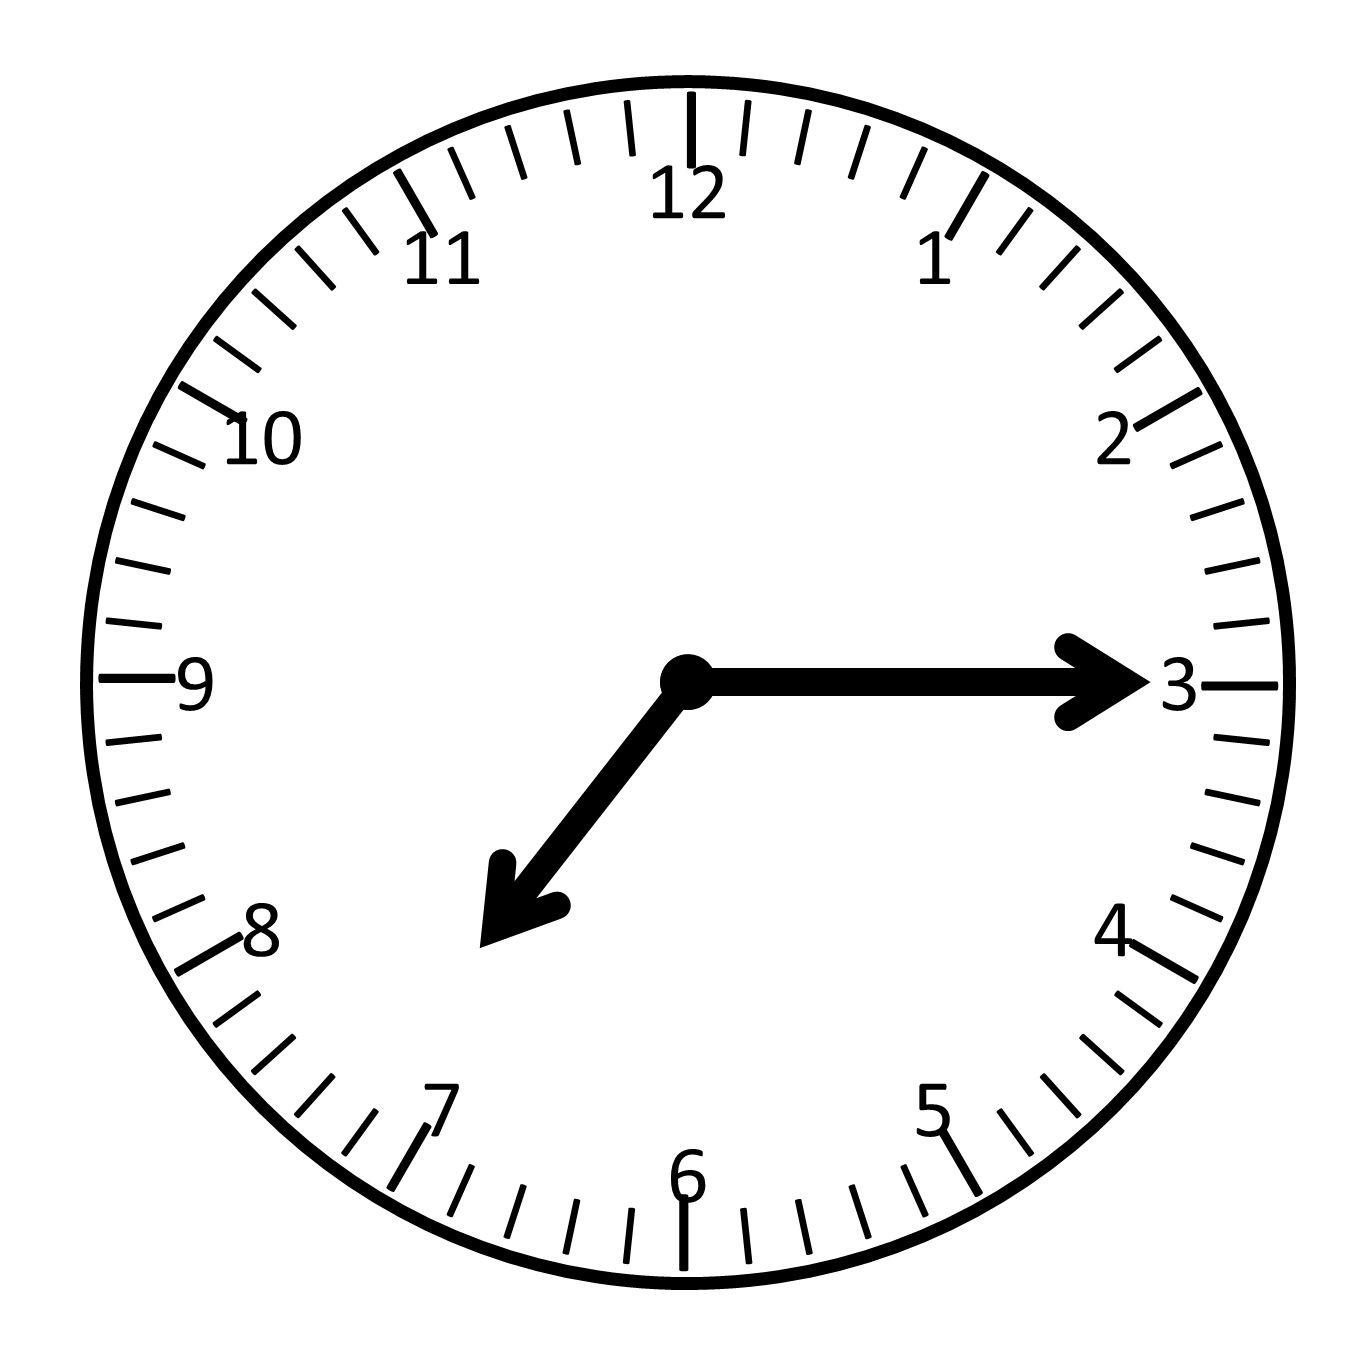 Analog Clock Face Template - ClipArt Best